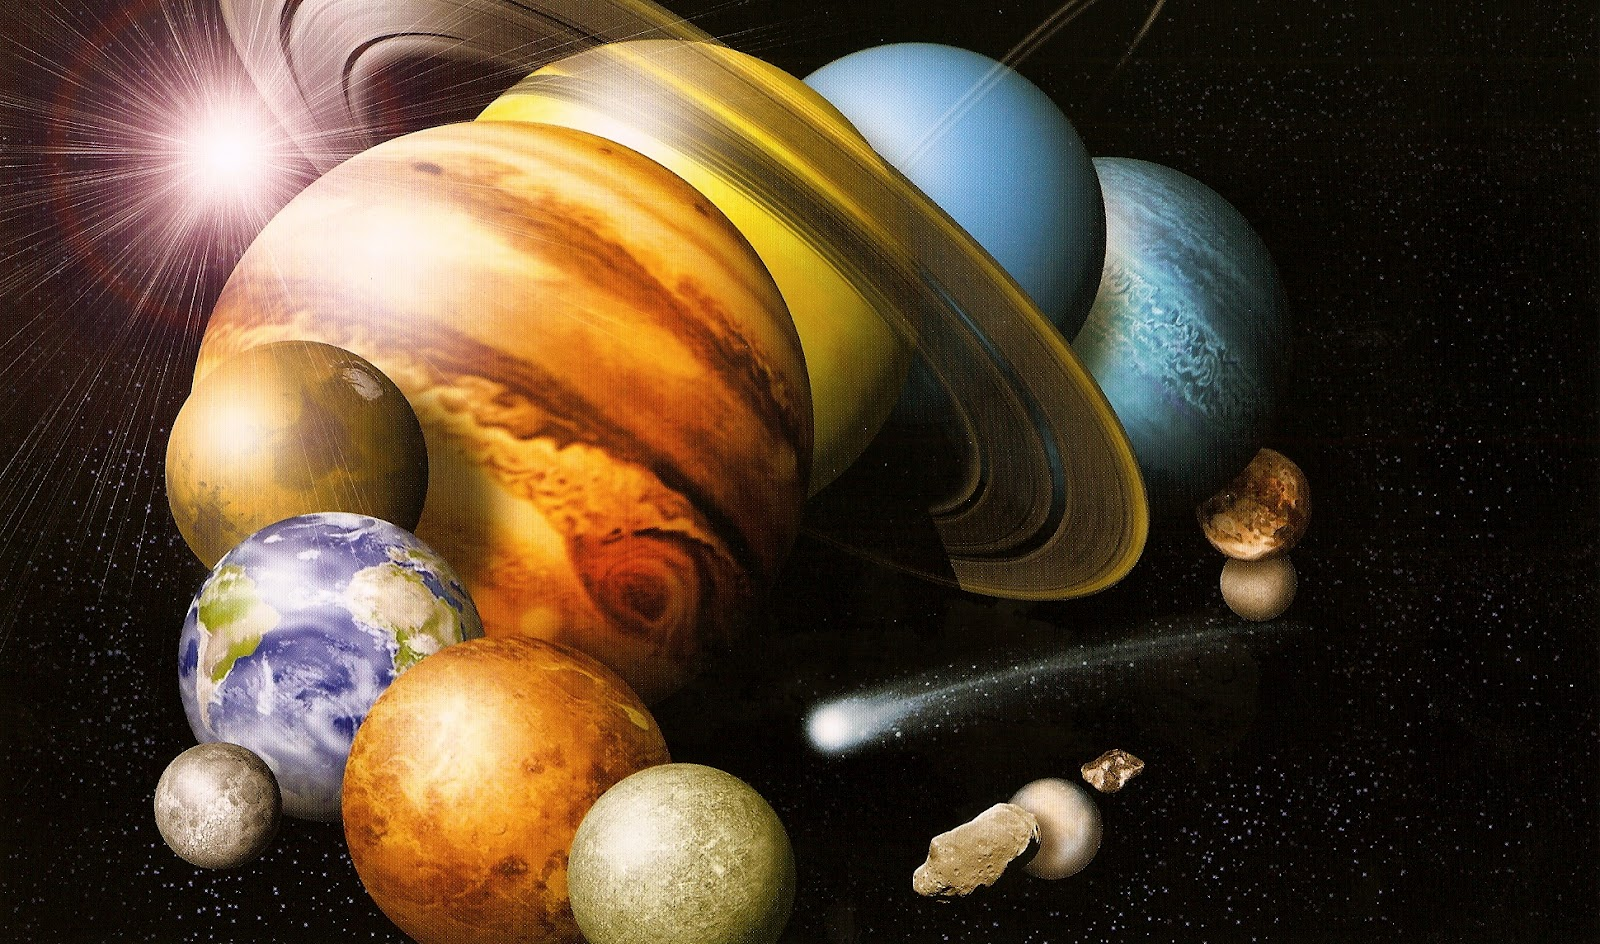 real pictures of the solar system planets - photo #31